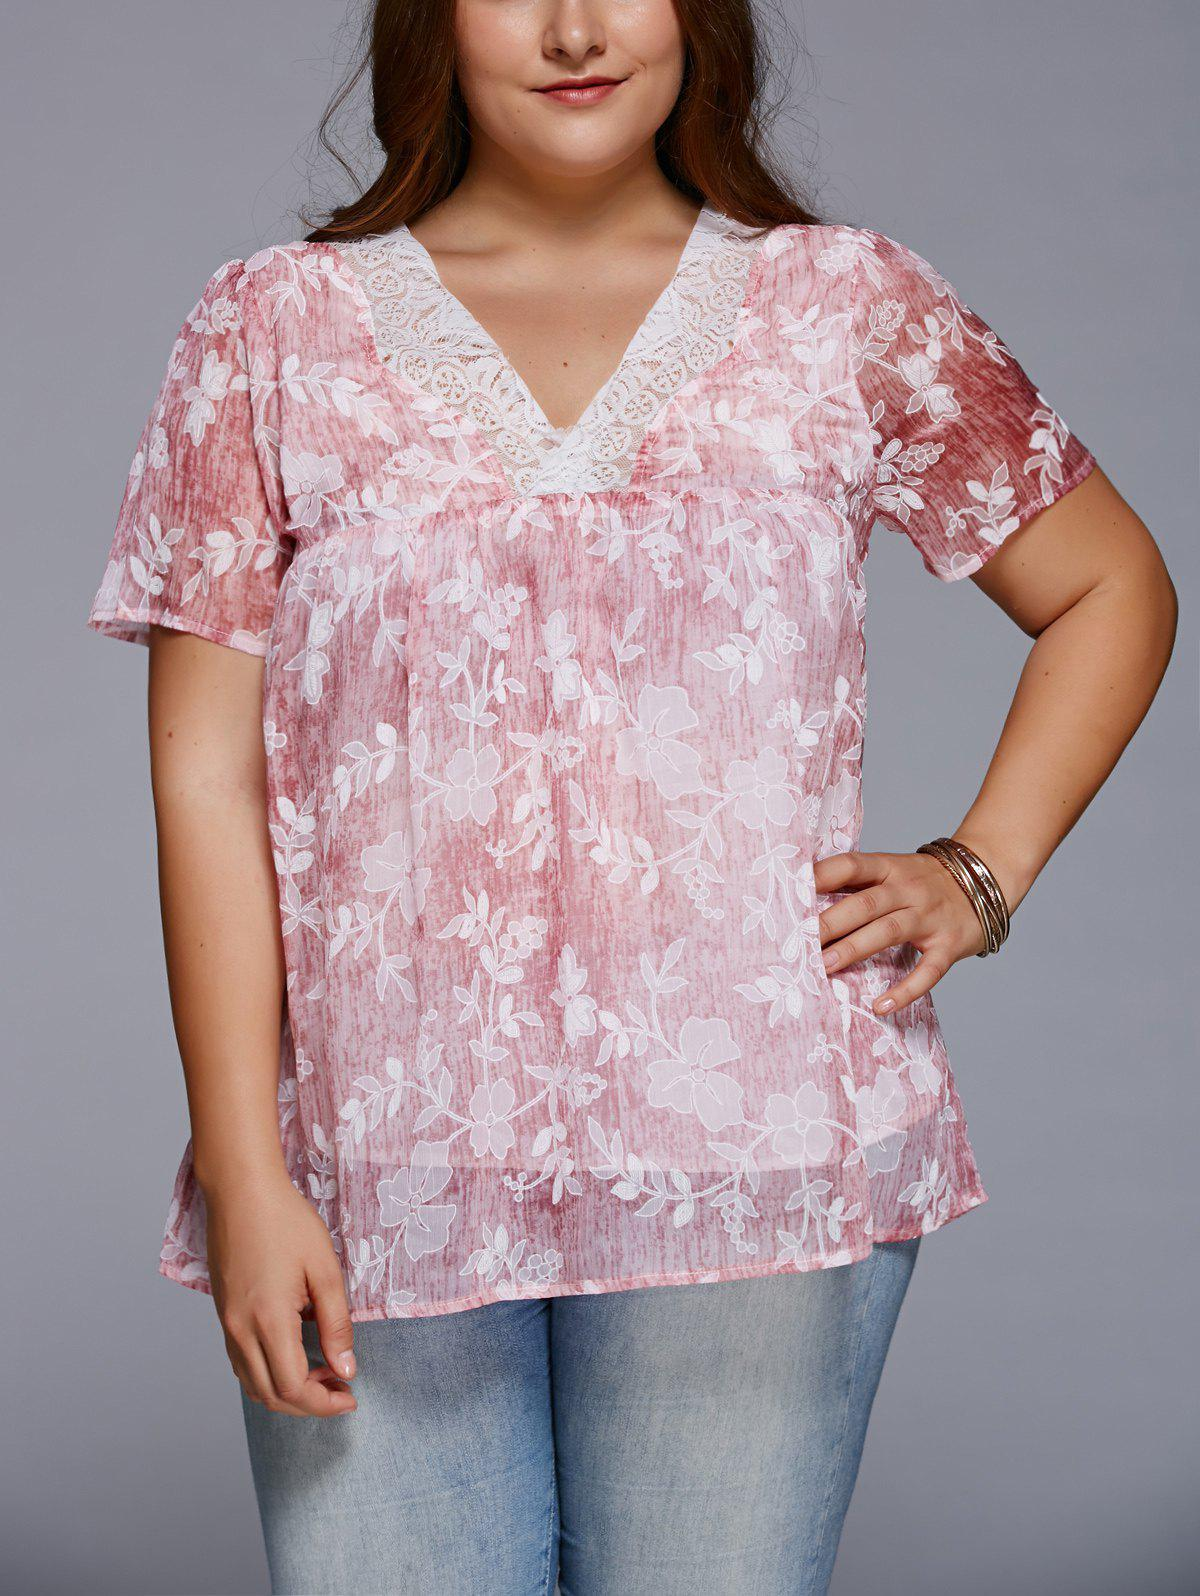 Sweet V Neck Floral Plus Size T-Shirt - LIGHT RED 5XL